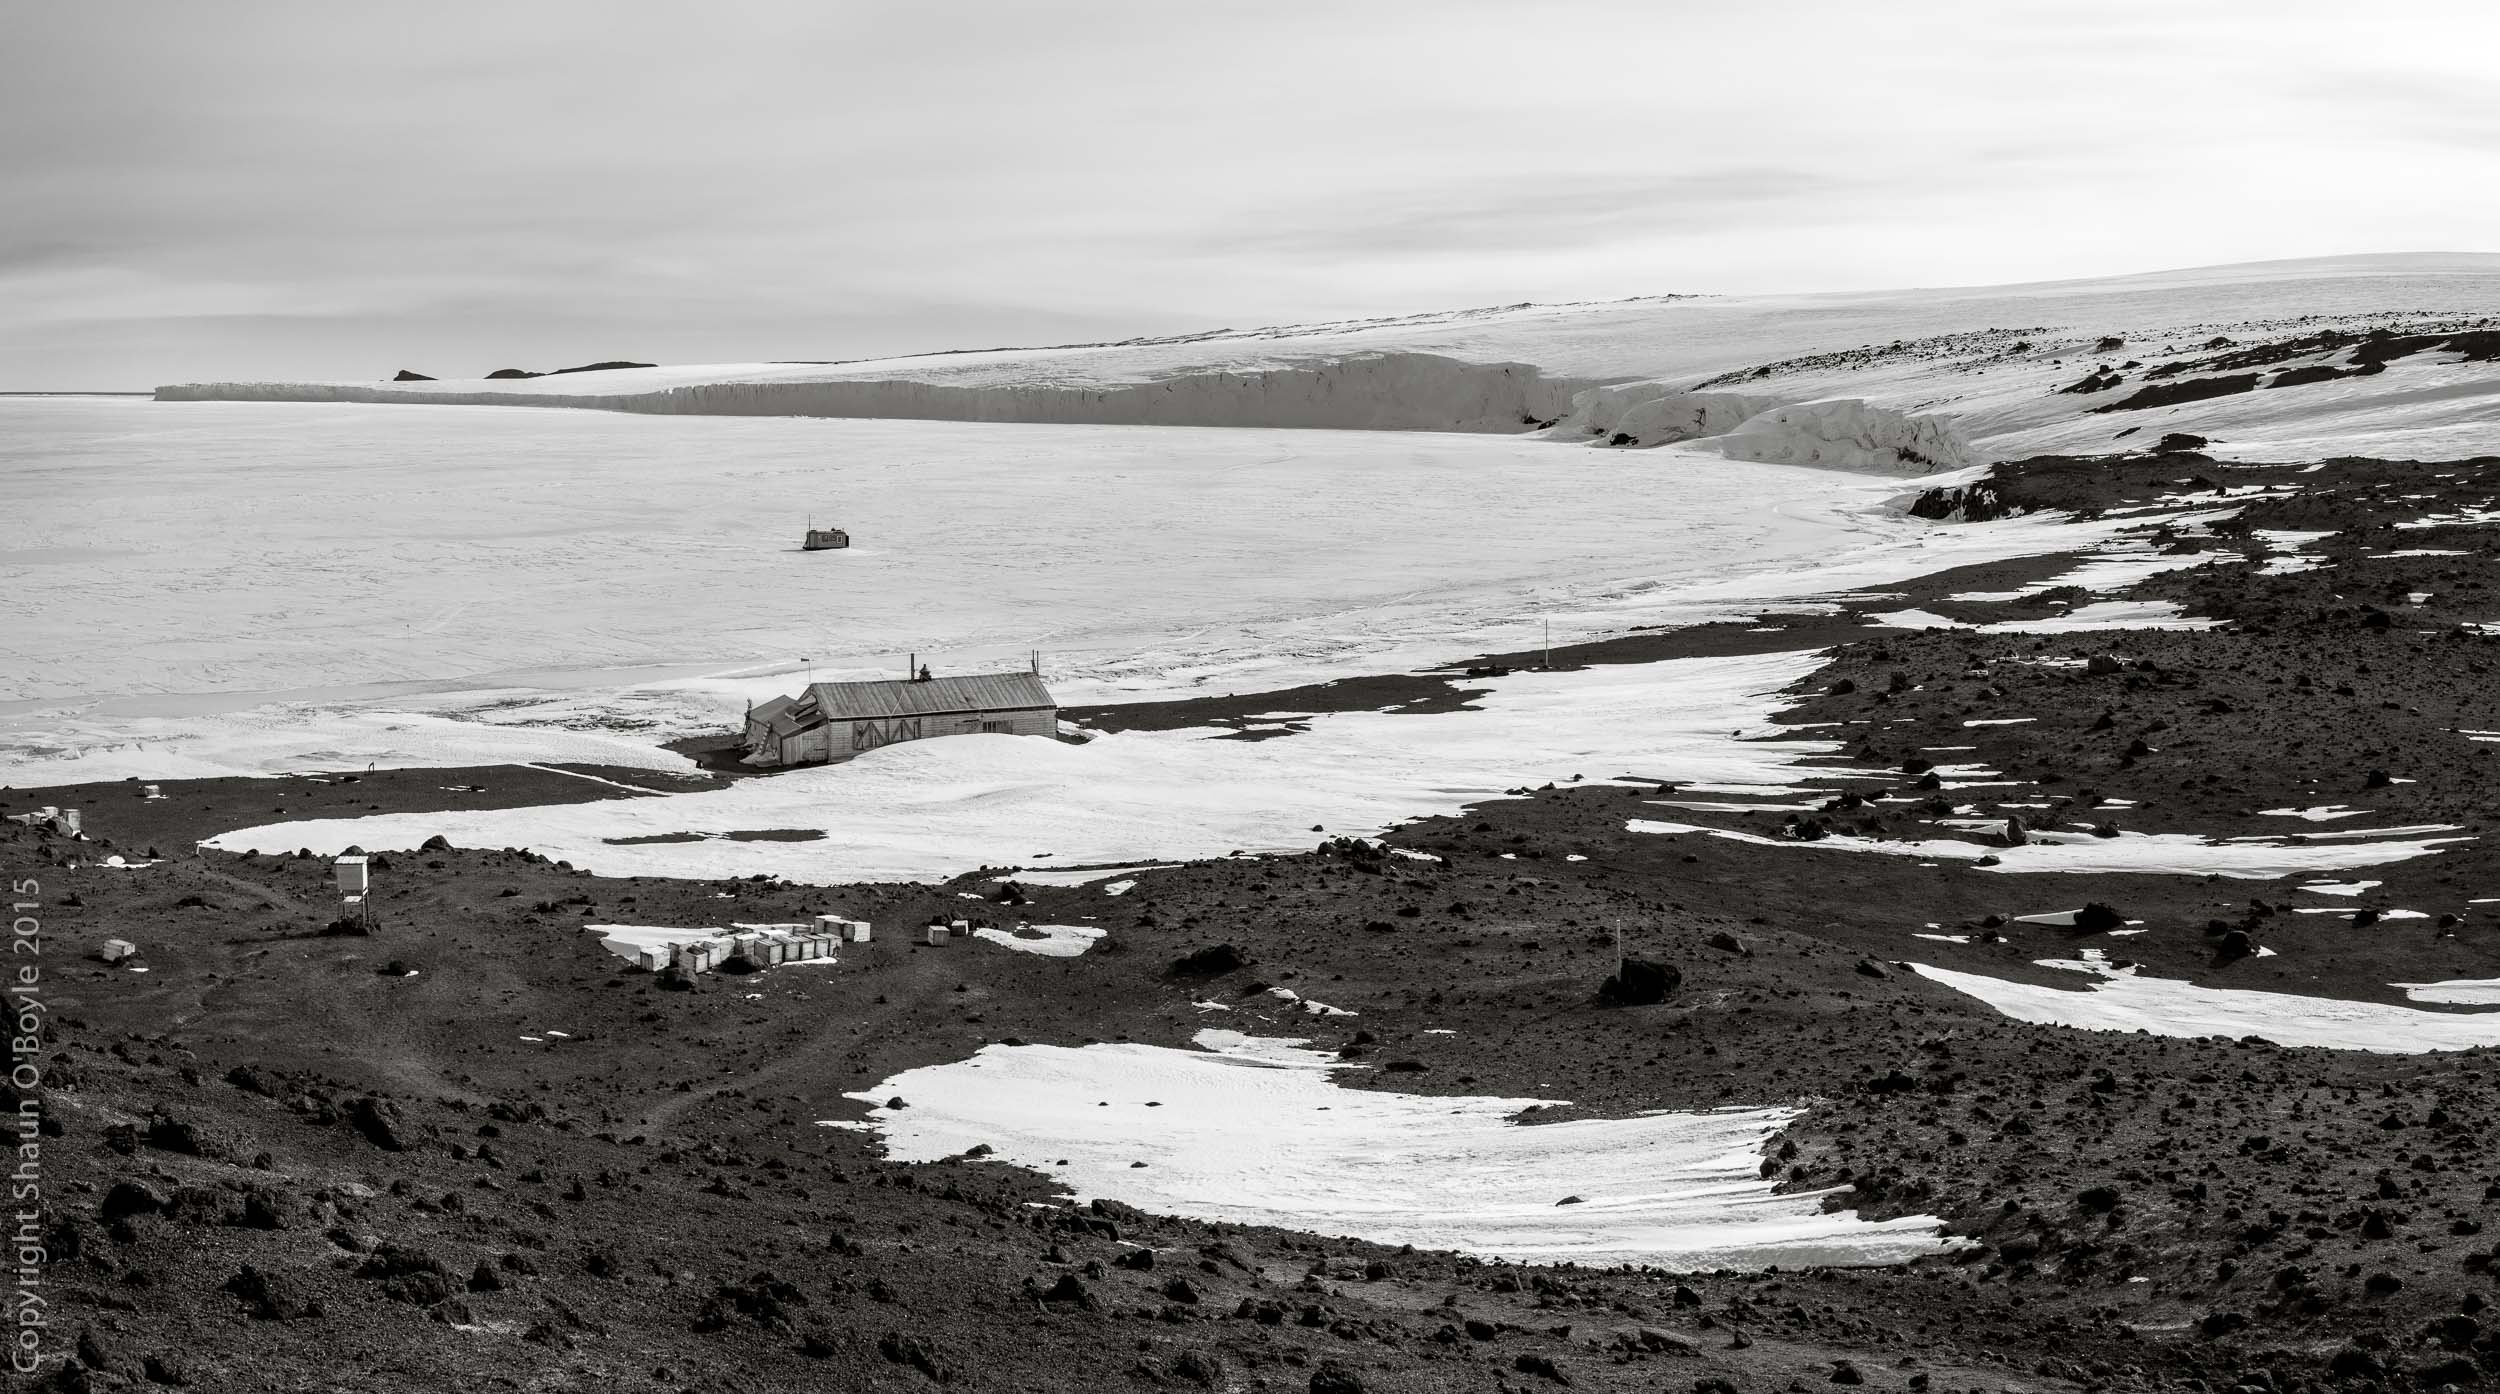 Cape Evans Hut and Barne Glacier. The fish hut on the sea ice is used for scuba diving and collecting samples and specimens from McMurdo Sound.